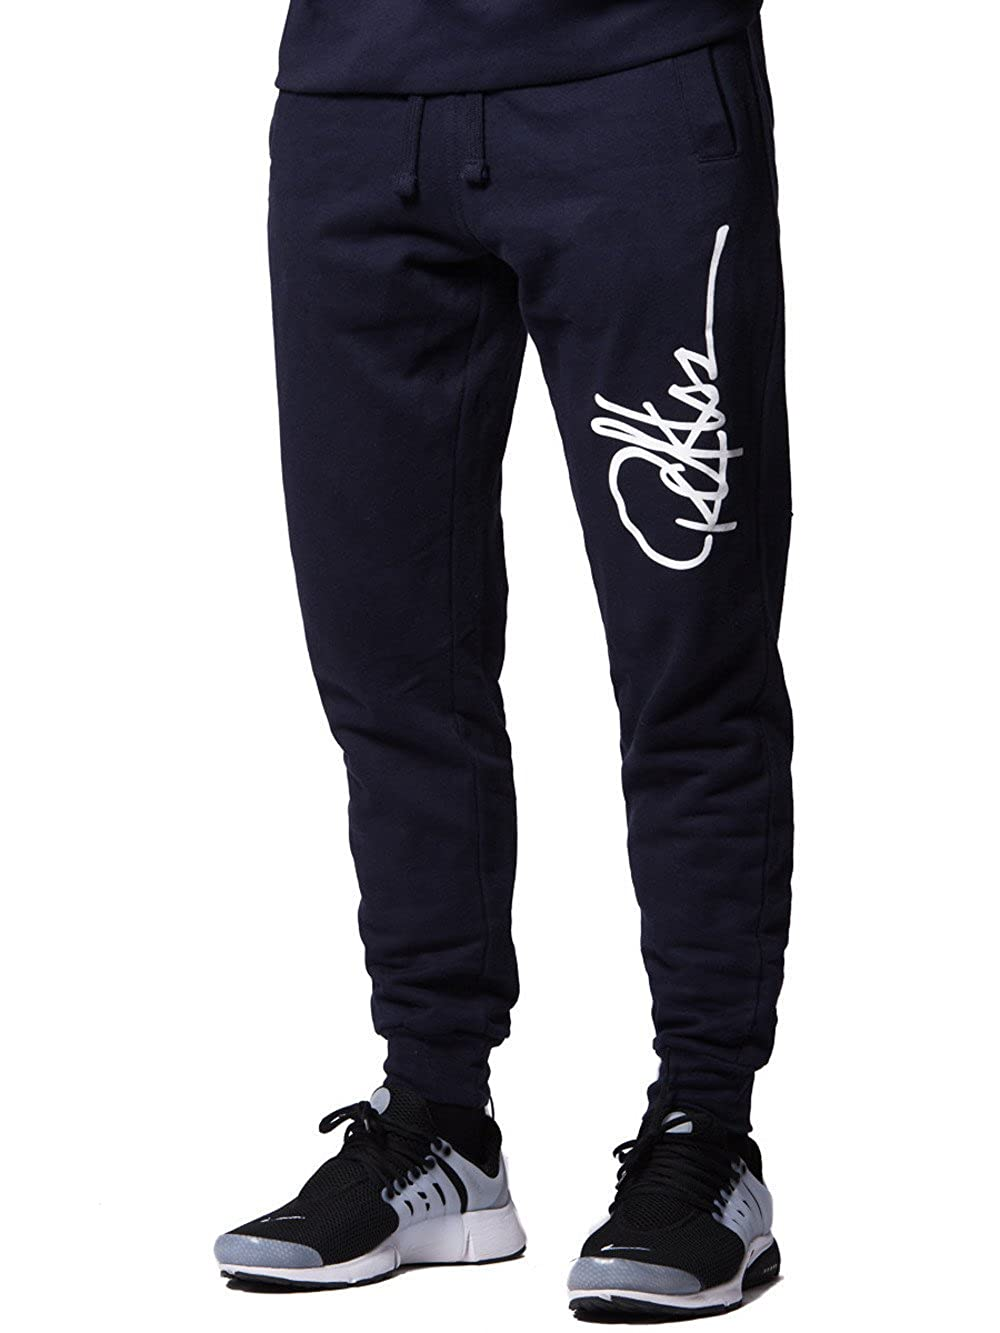 Young and Reckless - Signature Sweatpants- Navy - - Mens - Bottoms - Sweatpants - 11080125519